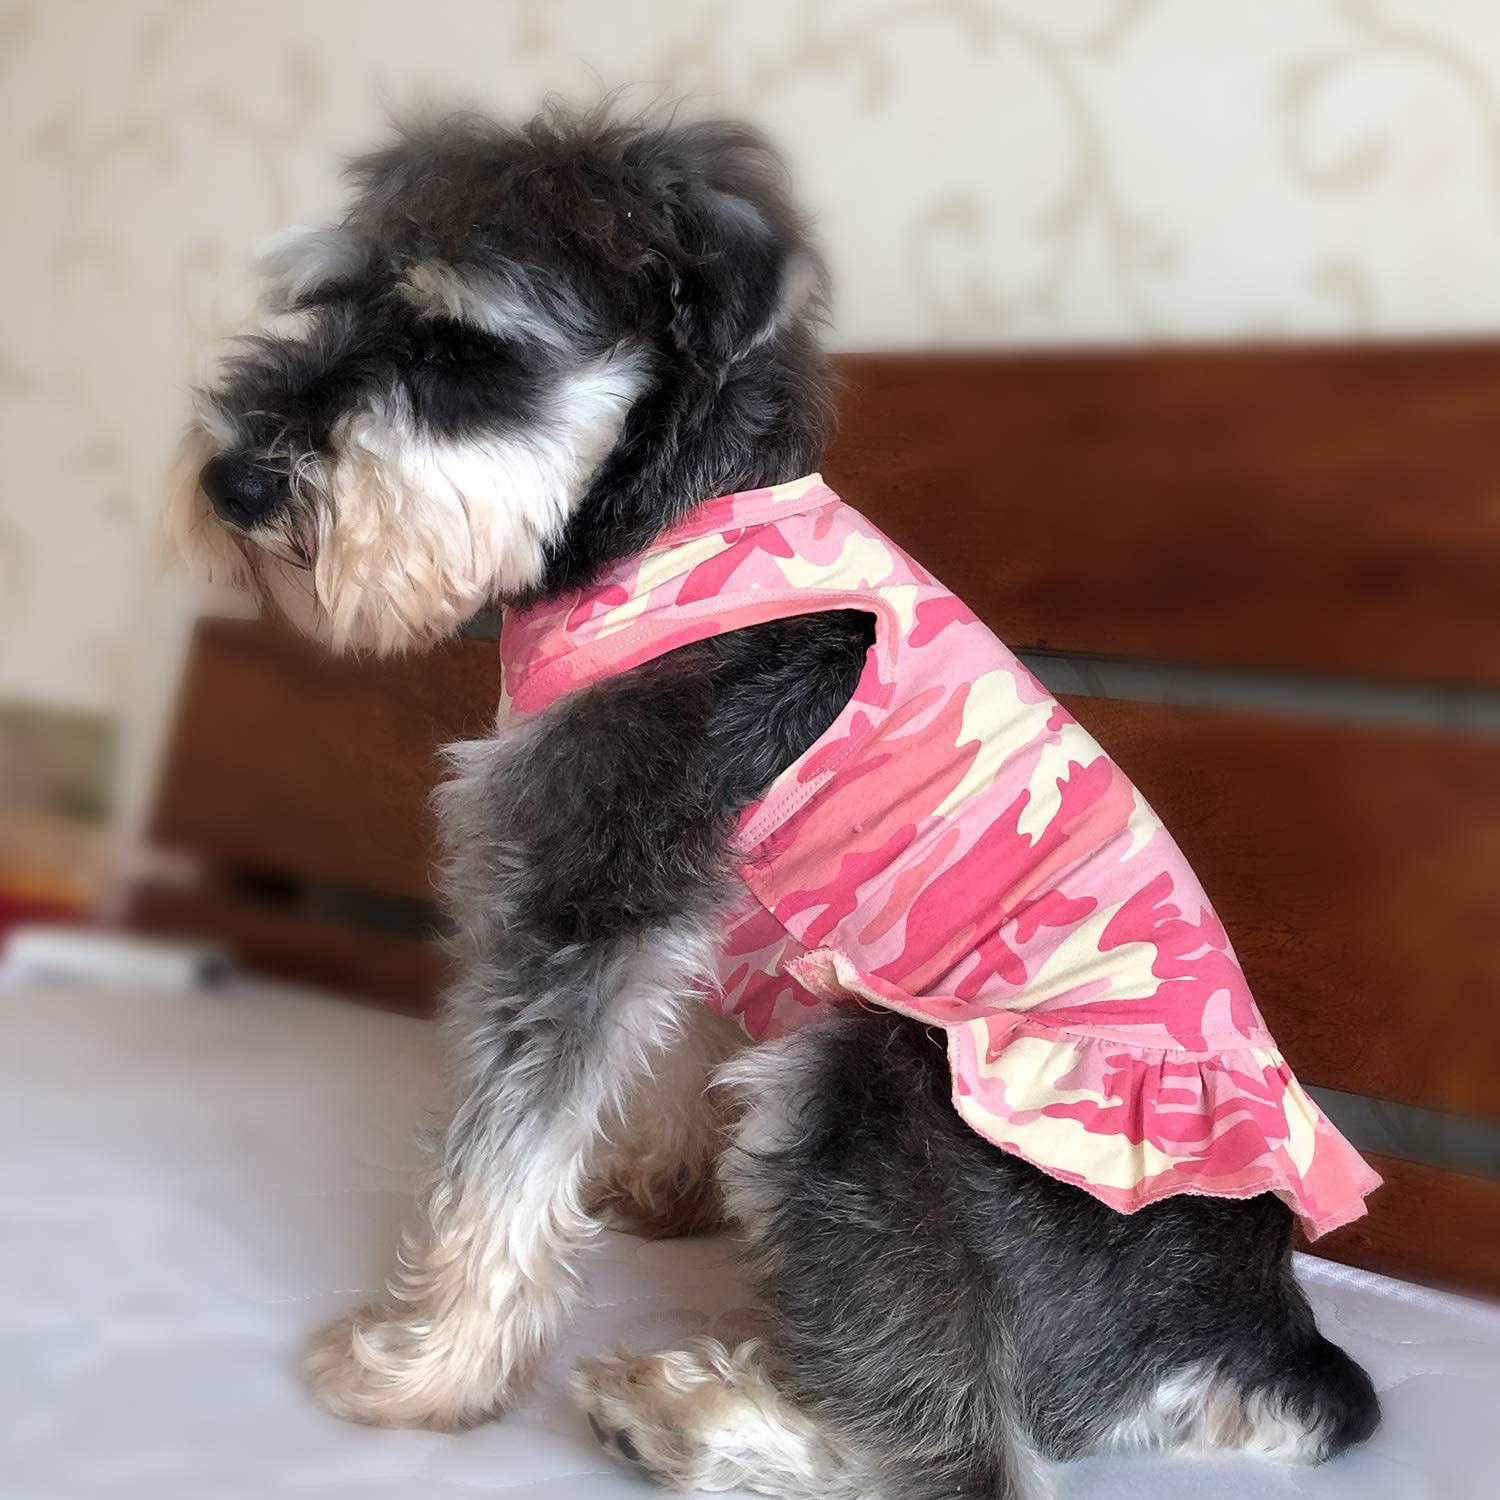 XS, Pink Lovelonglong Pet Clothing Small Dog Clothes Camouflage Sport Dress T-Shirts Tee Dresses Tanks Top for Small Size Female Dogs Summer Spring Pet Costumes 100/% Cotton